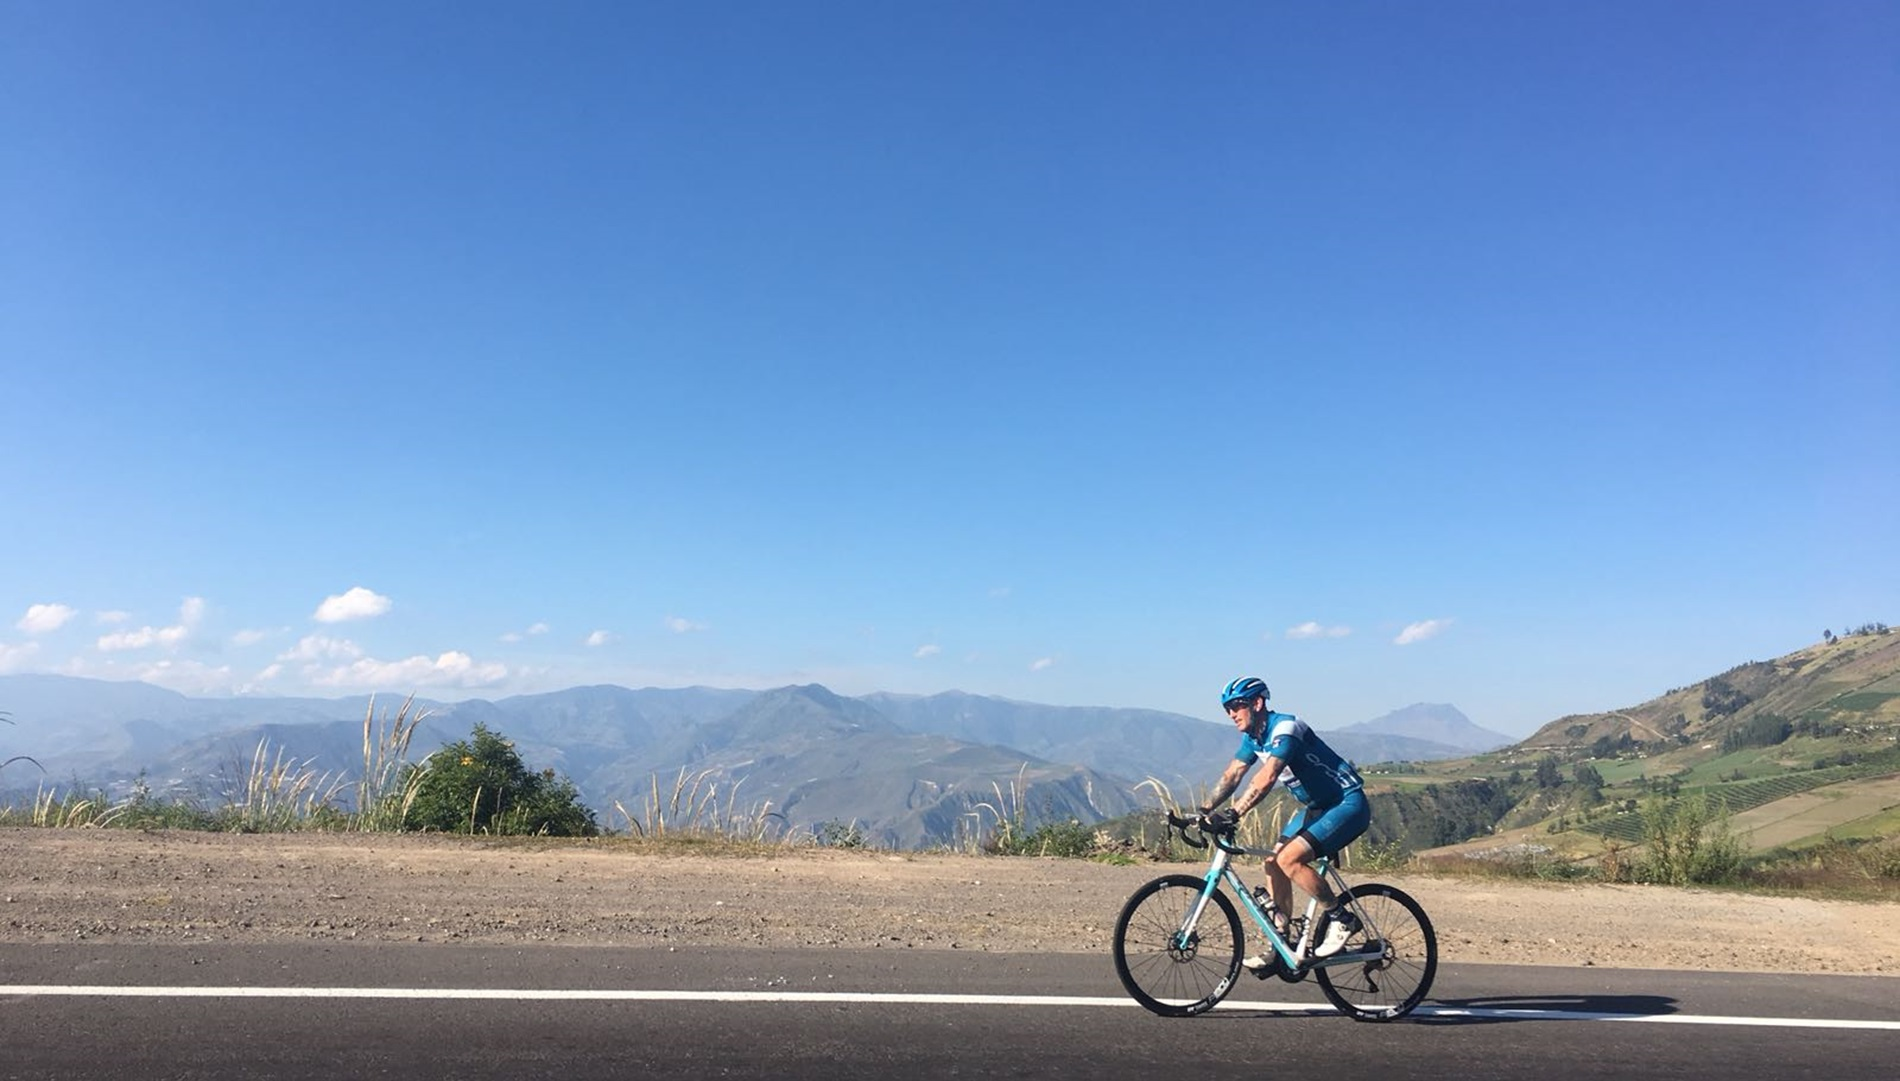 Dean cycling on the Pan-American highway